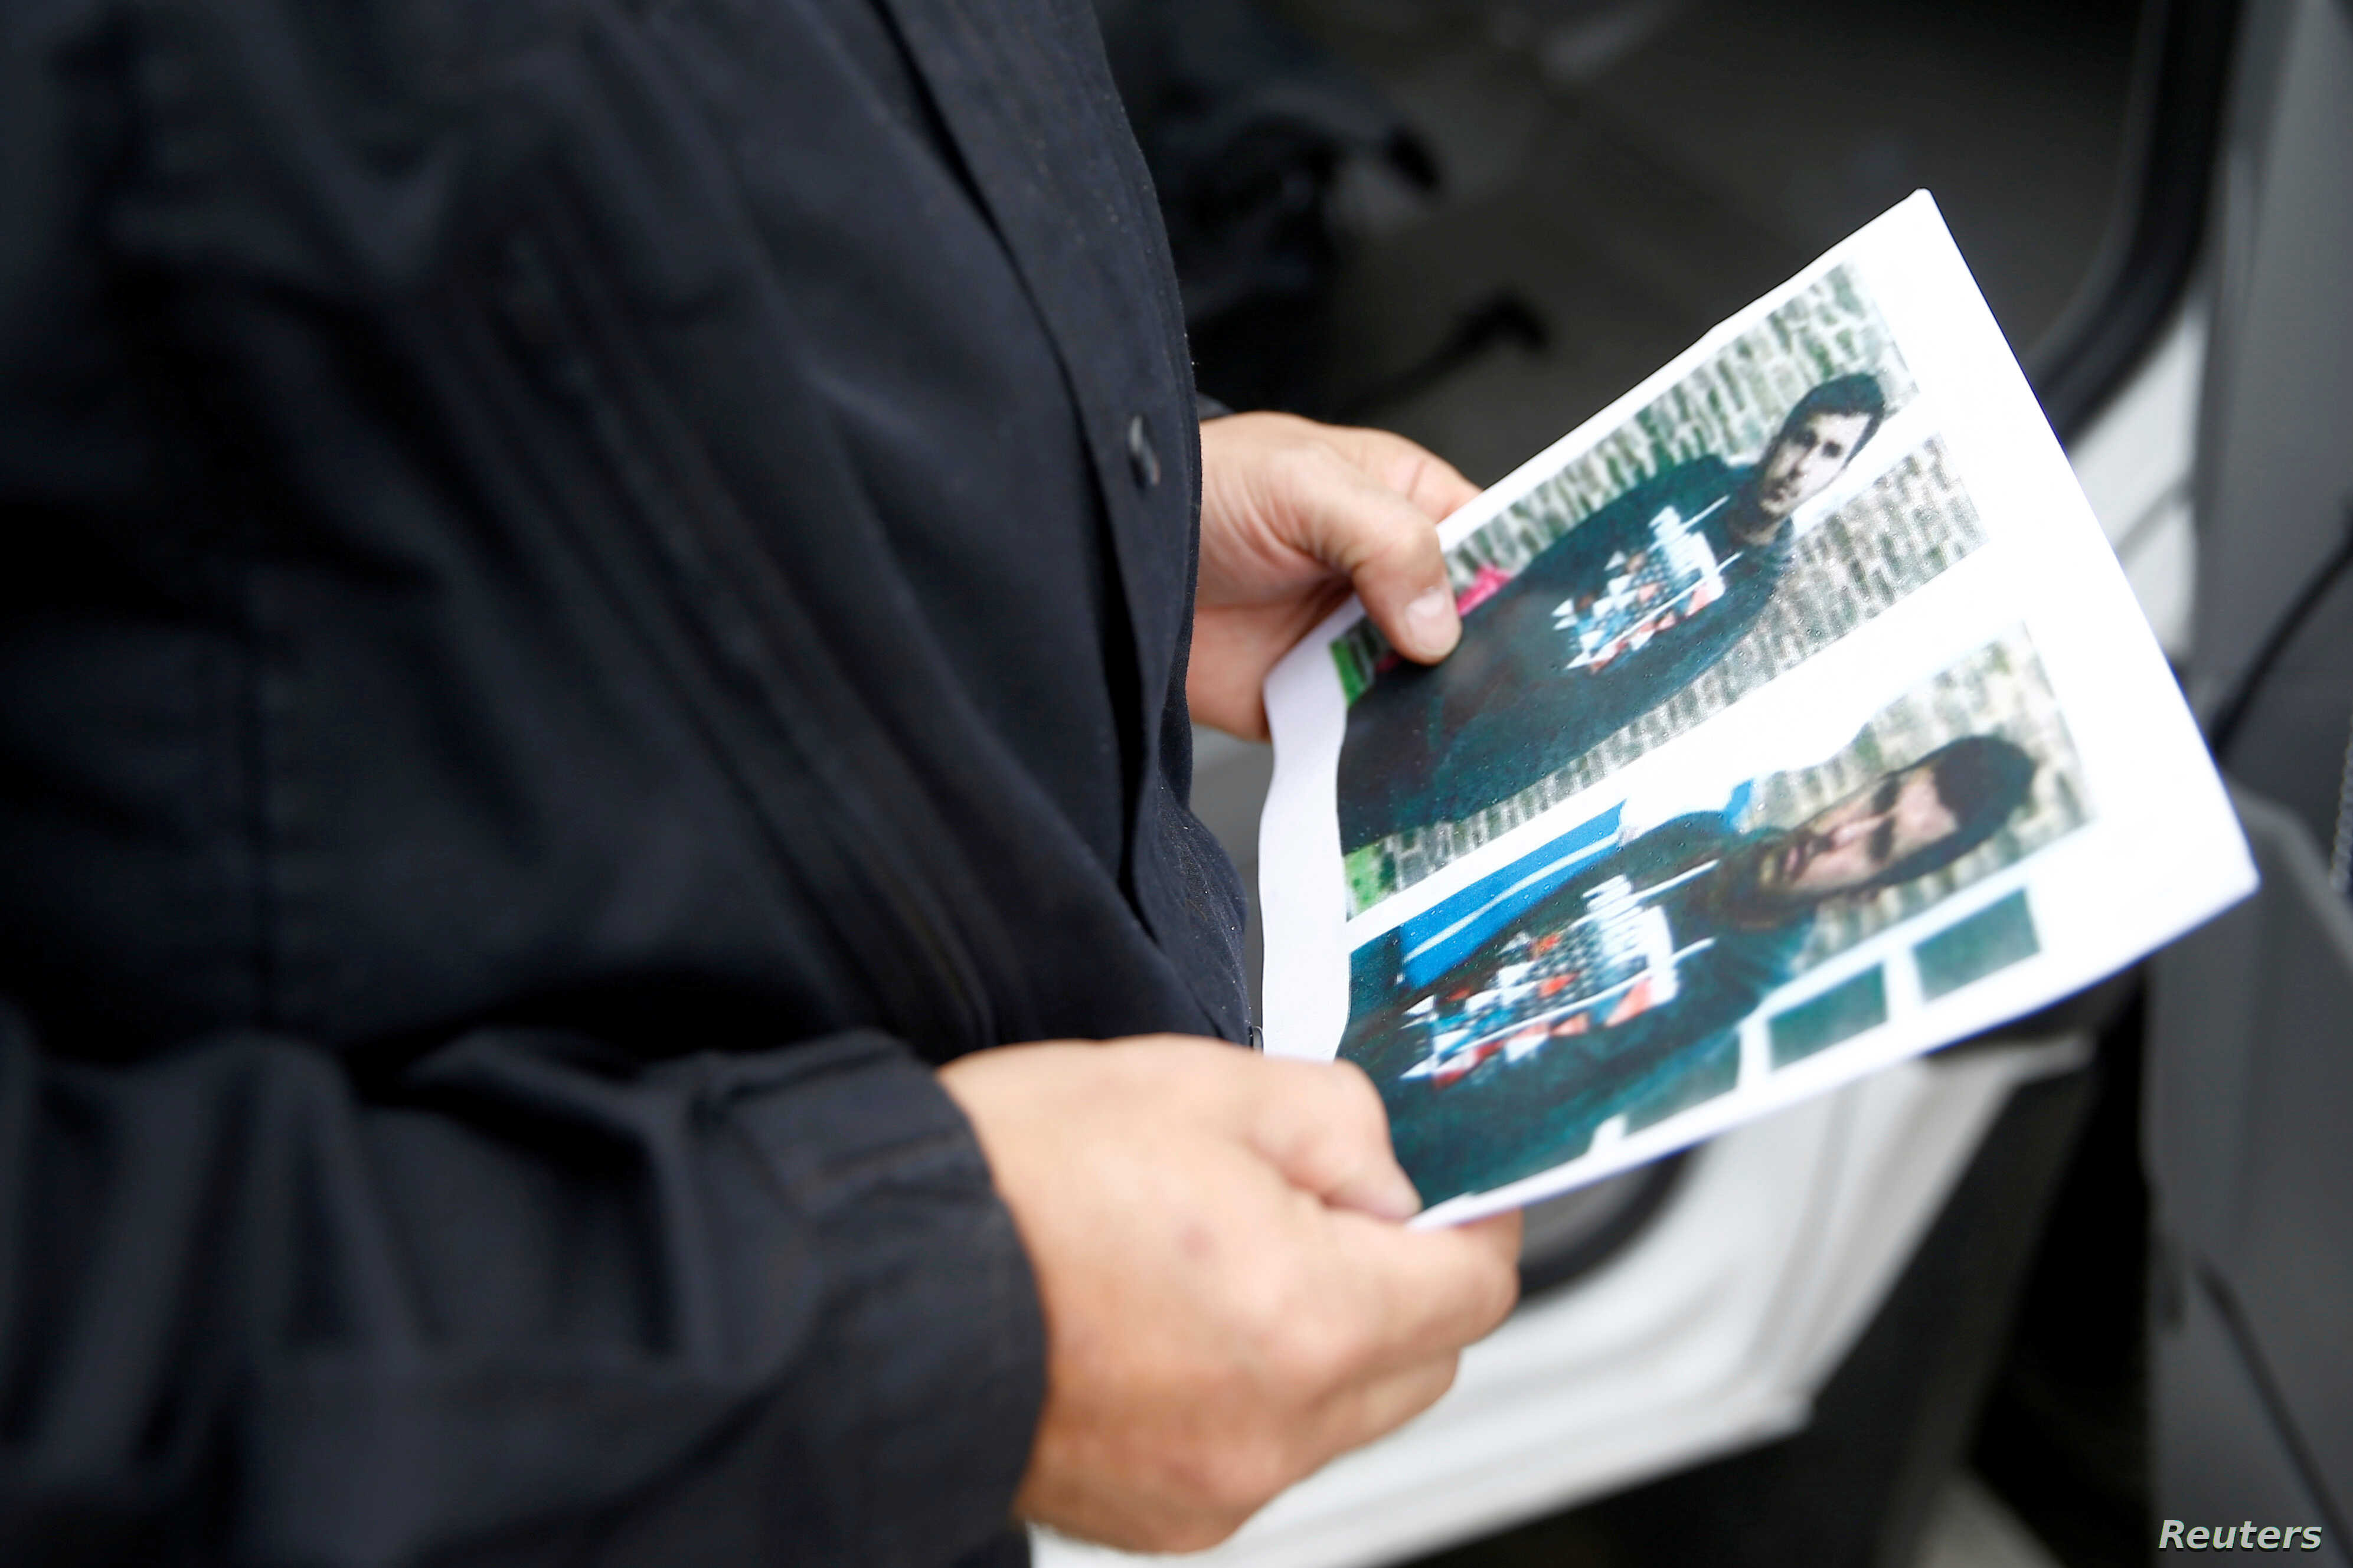 A German policeman holds the picture of a terrorist-subject infront of the main terminal of Berlin-Schoenefeld airport, in Schoenefeld, near Berlin, Oct. 9, 2016, following a suspicion that a bomb attack was being planned in Germany.